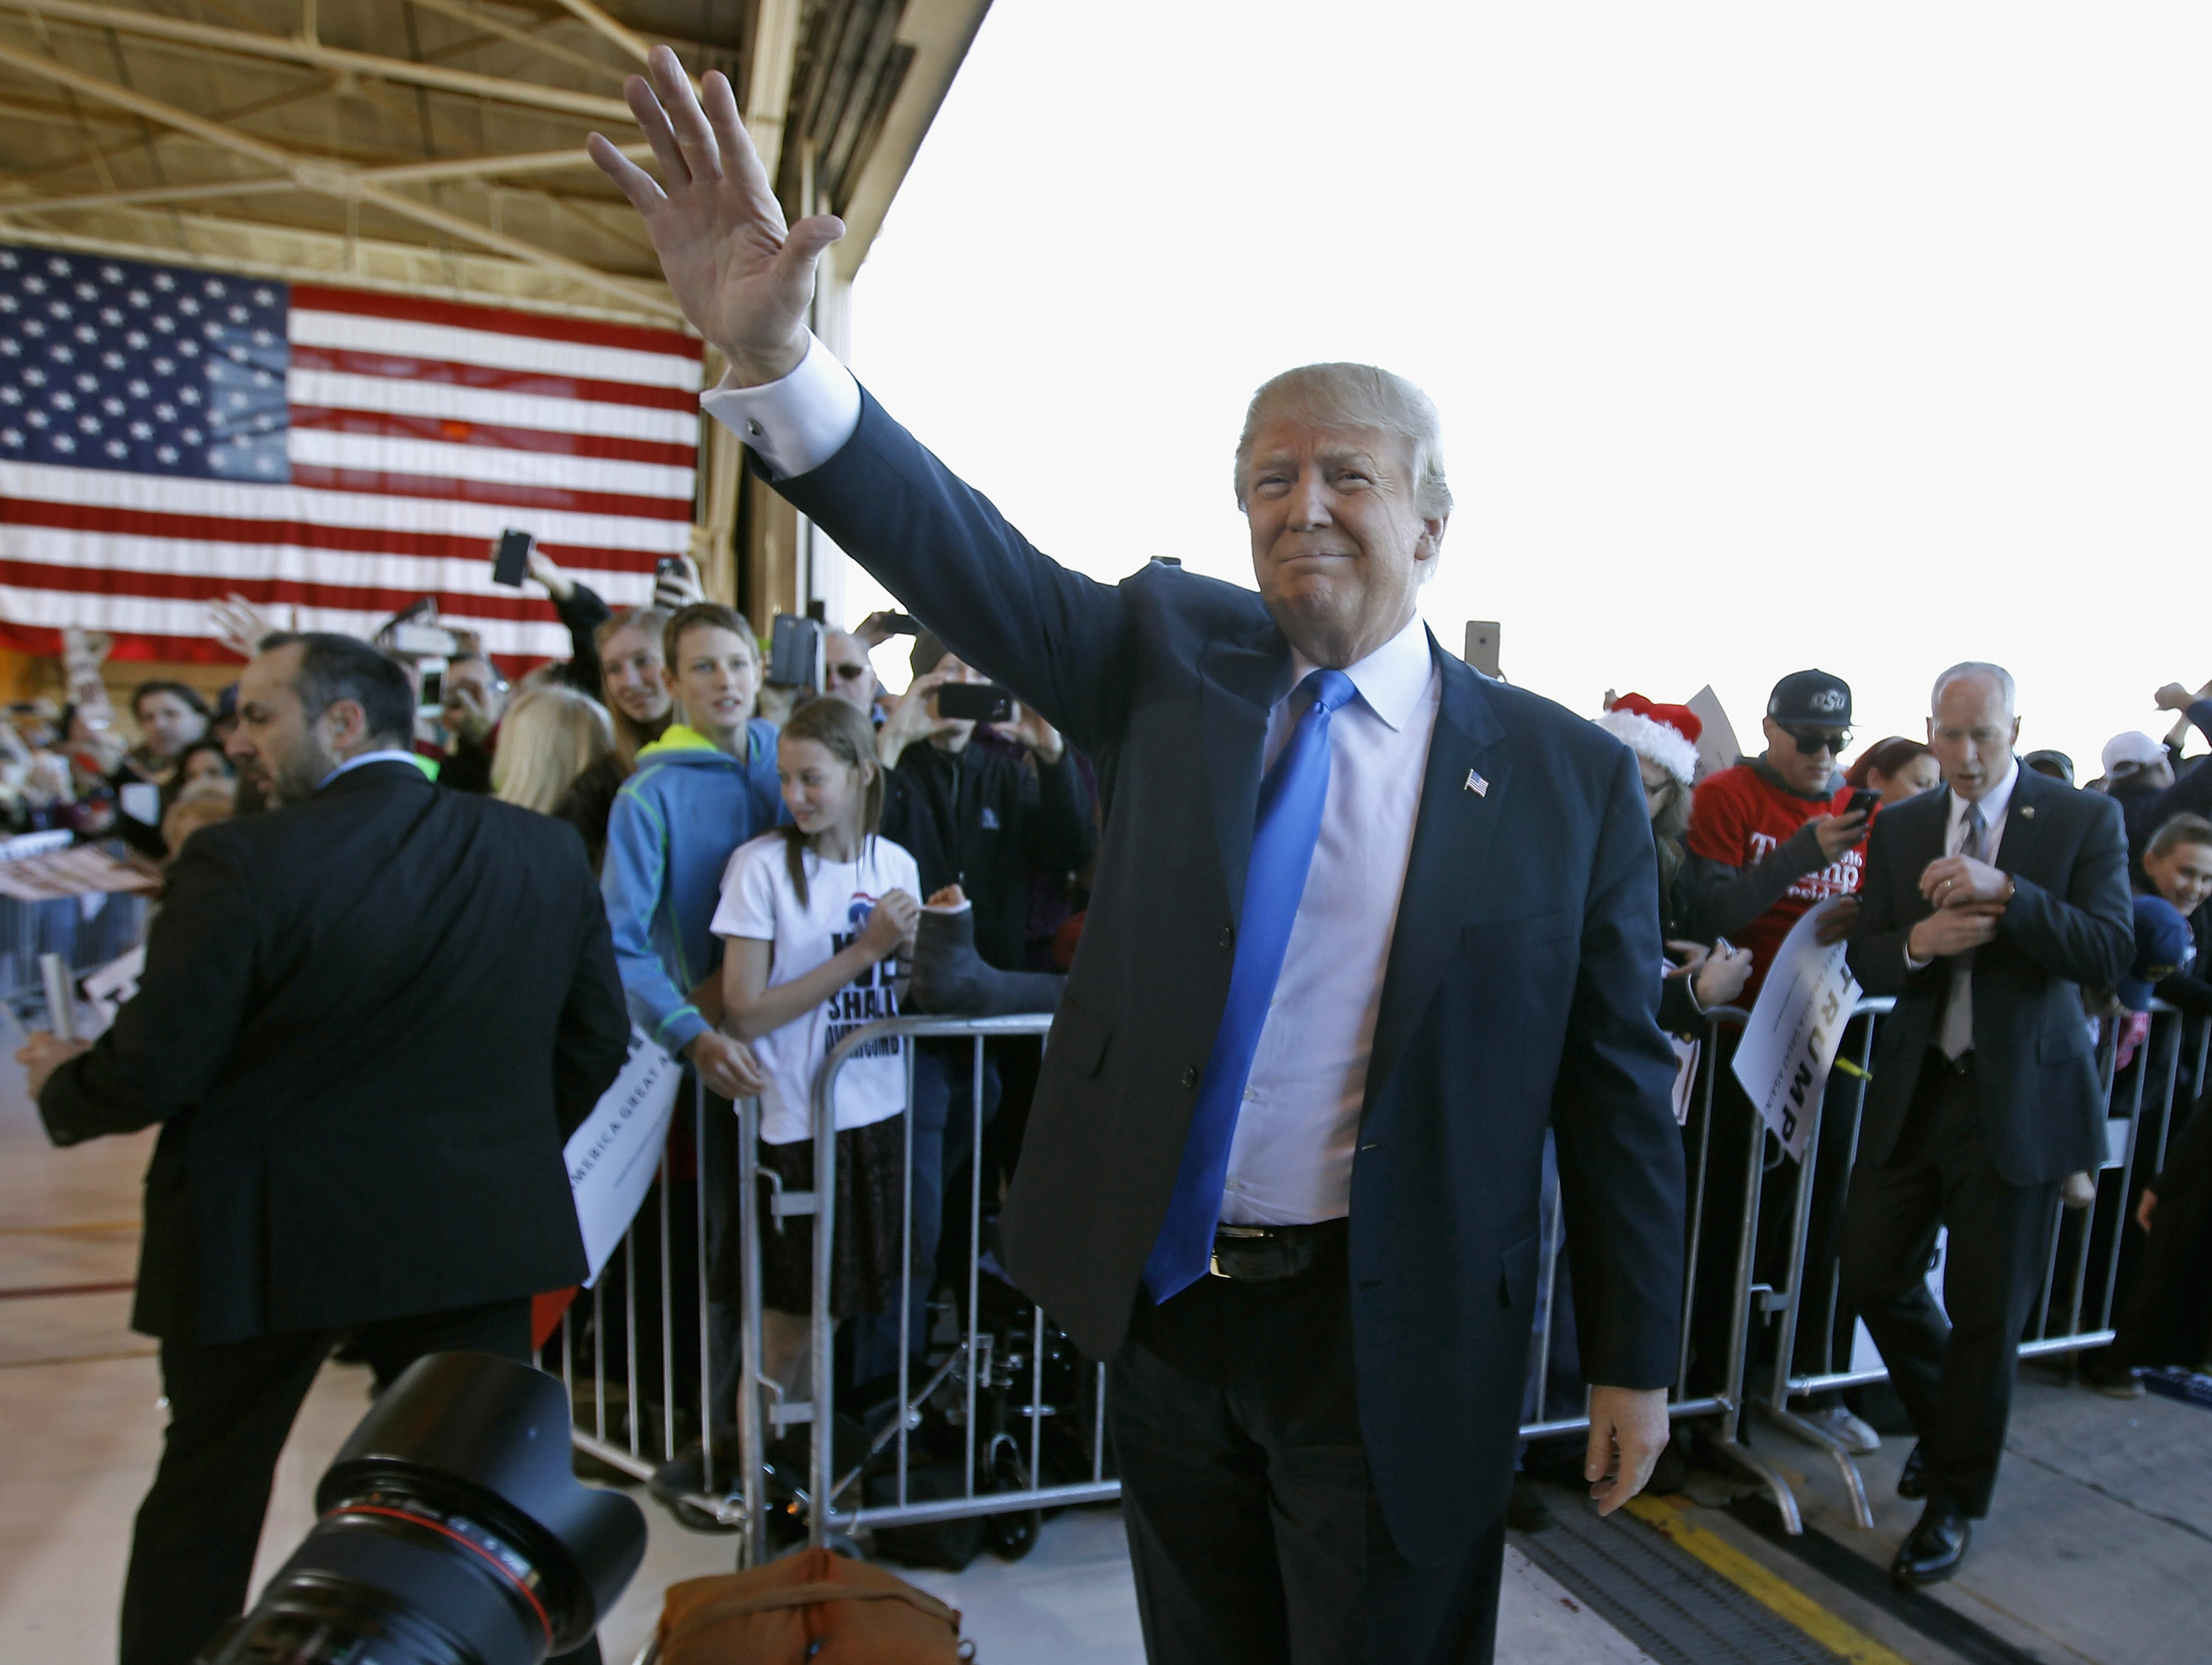 Donald Trump waves to the crowd as he arrives at a campaign event at the International Air Response facility on Dec. 16  in Mesa, Arizona.